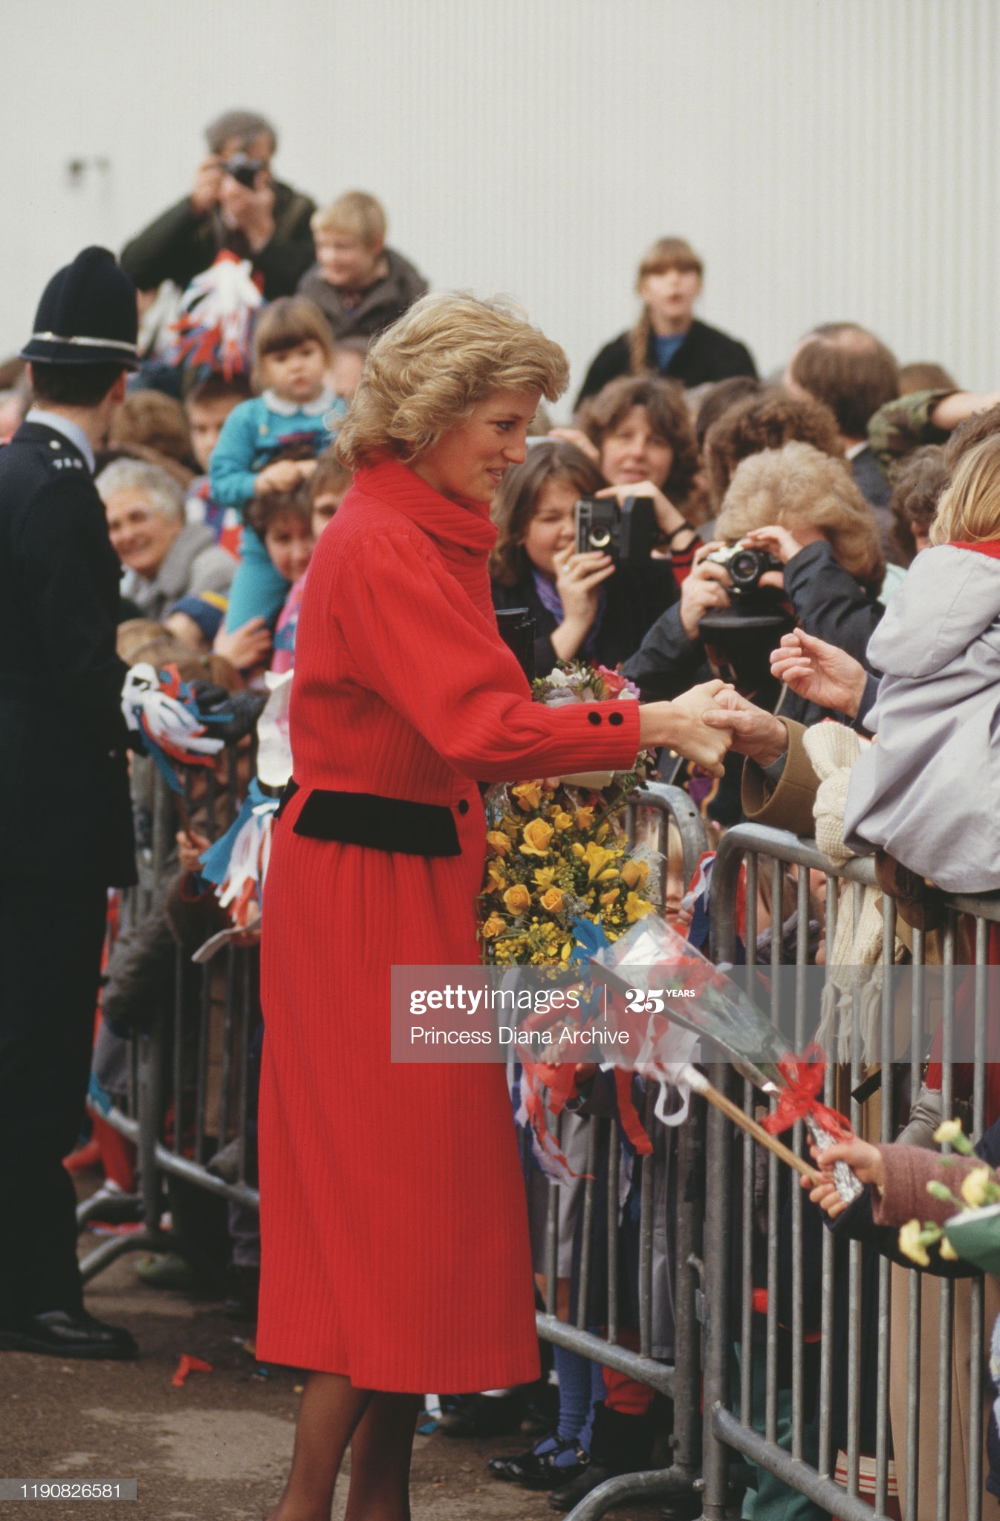 Diana, Princess of Wales meets members of the public in